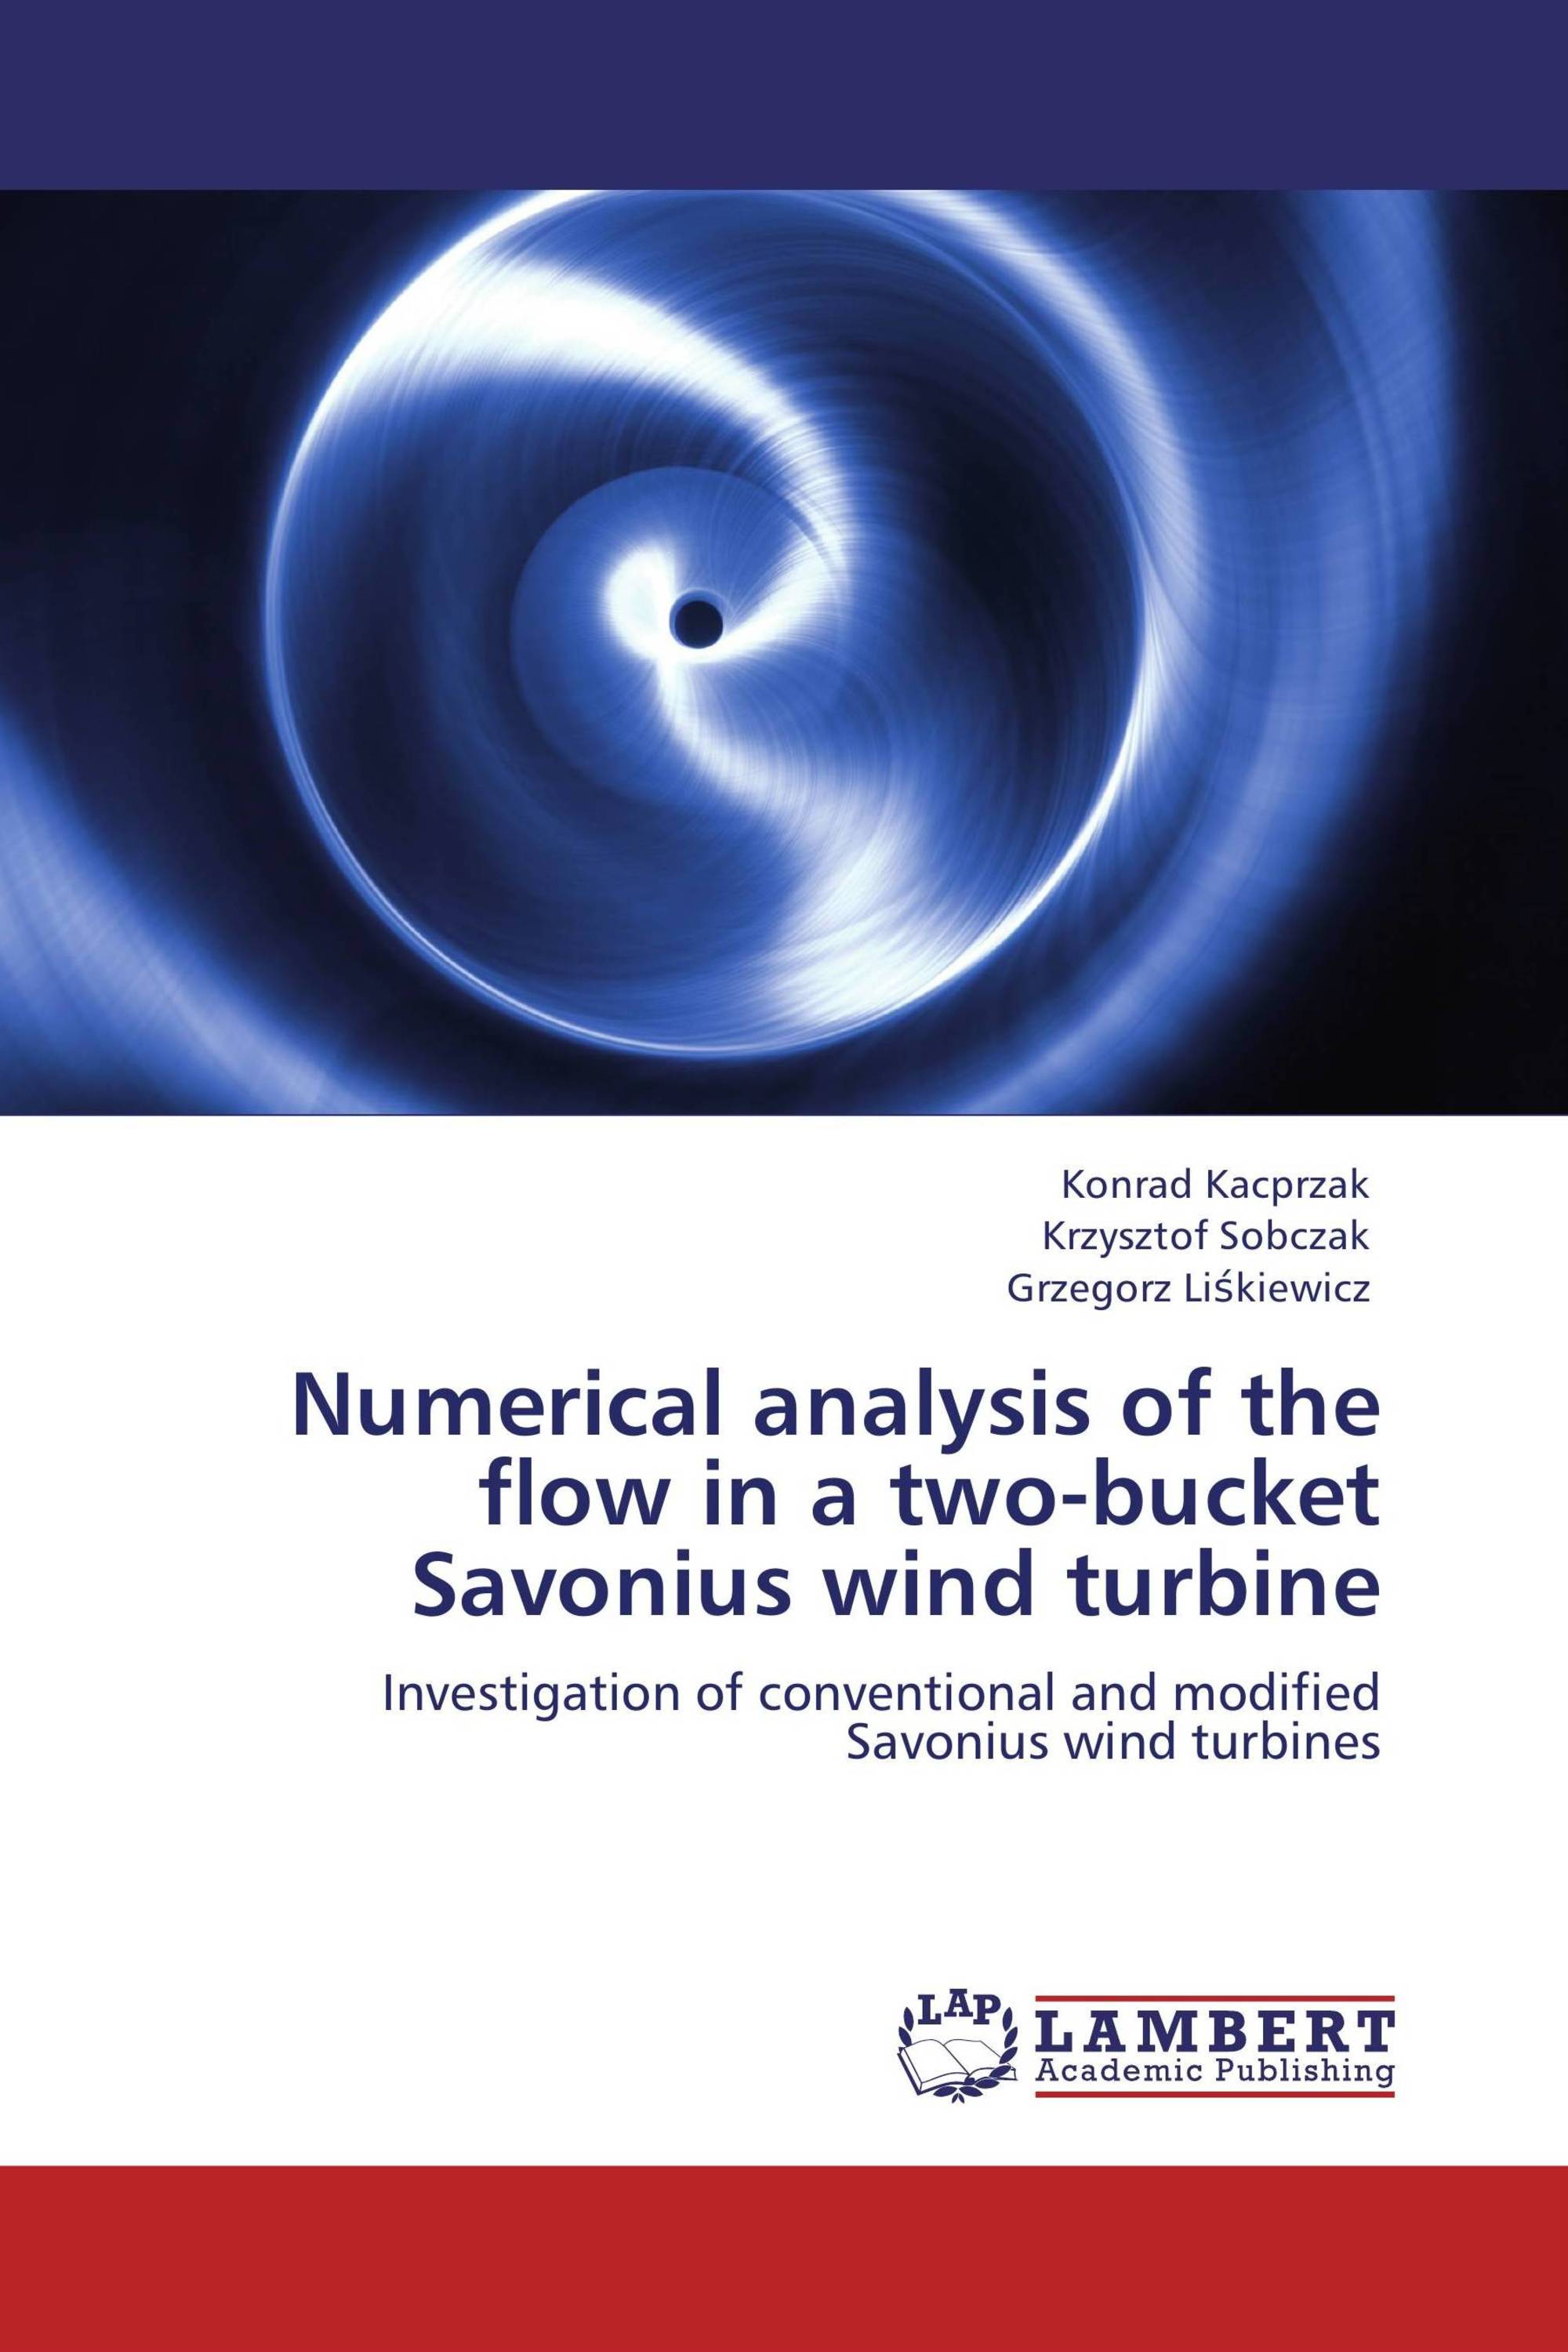 Numerical analysis of the flow in a two-bucket Savonius wind